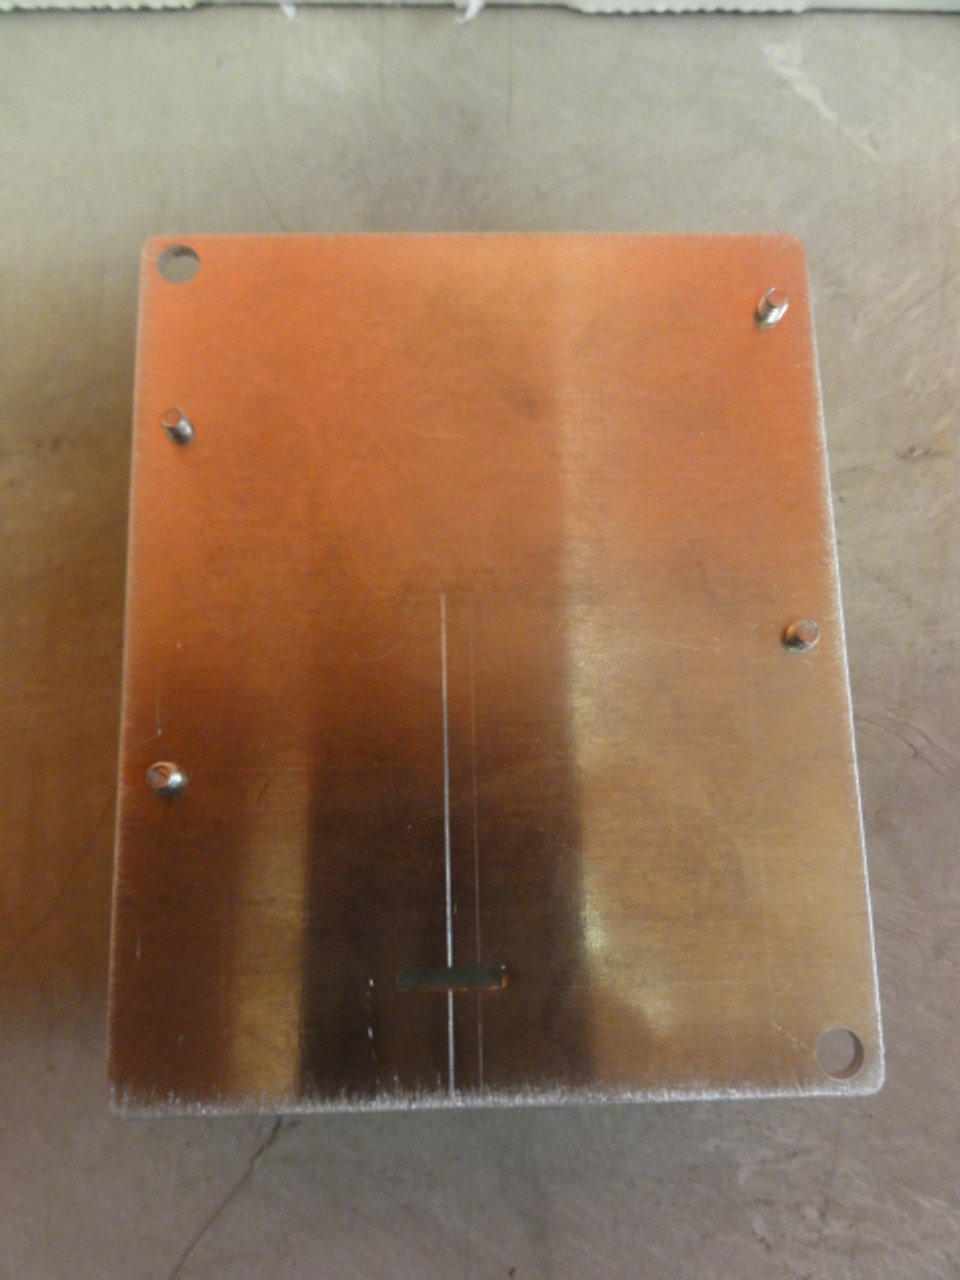 (2) RECOM RACD06-500 LED POWER SUPPLIES ON MOUNTING PLATE